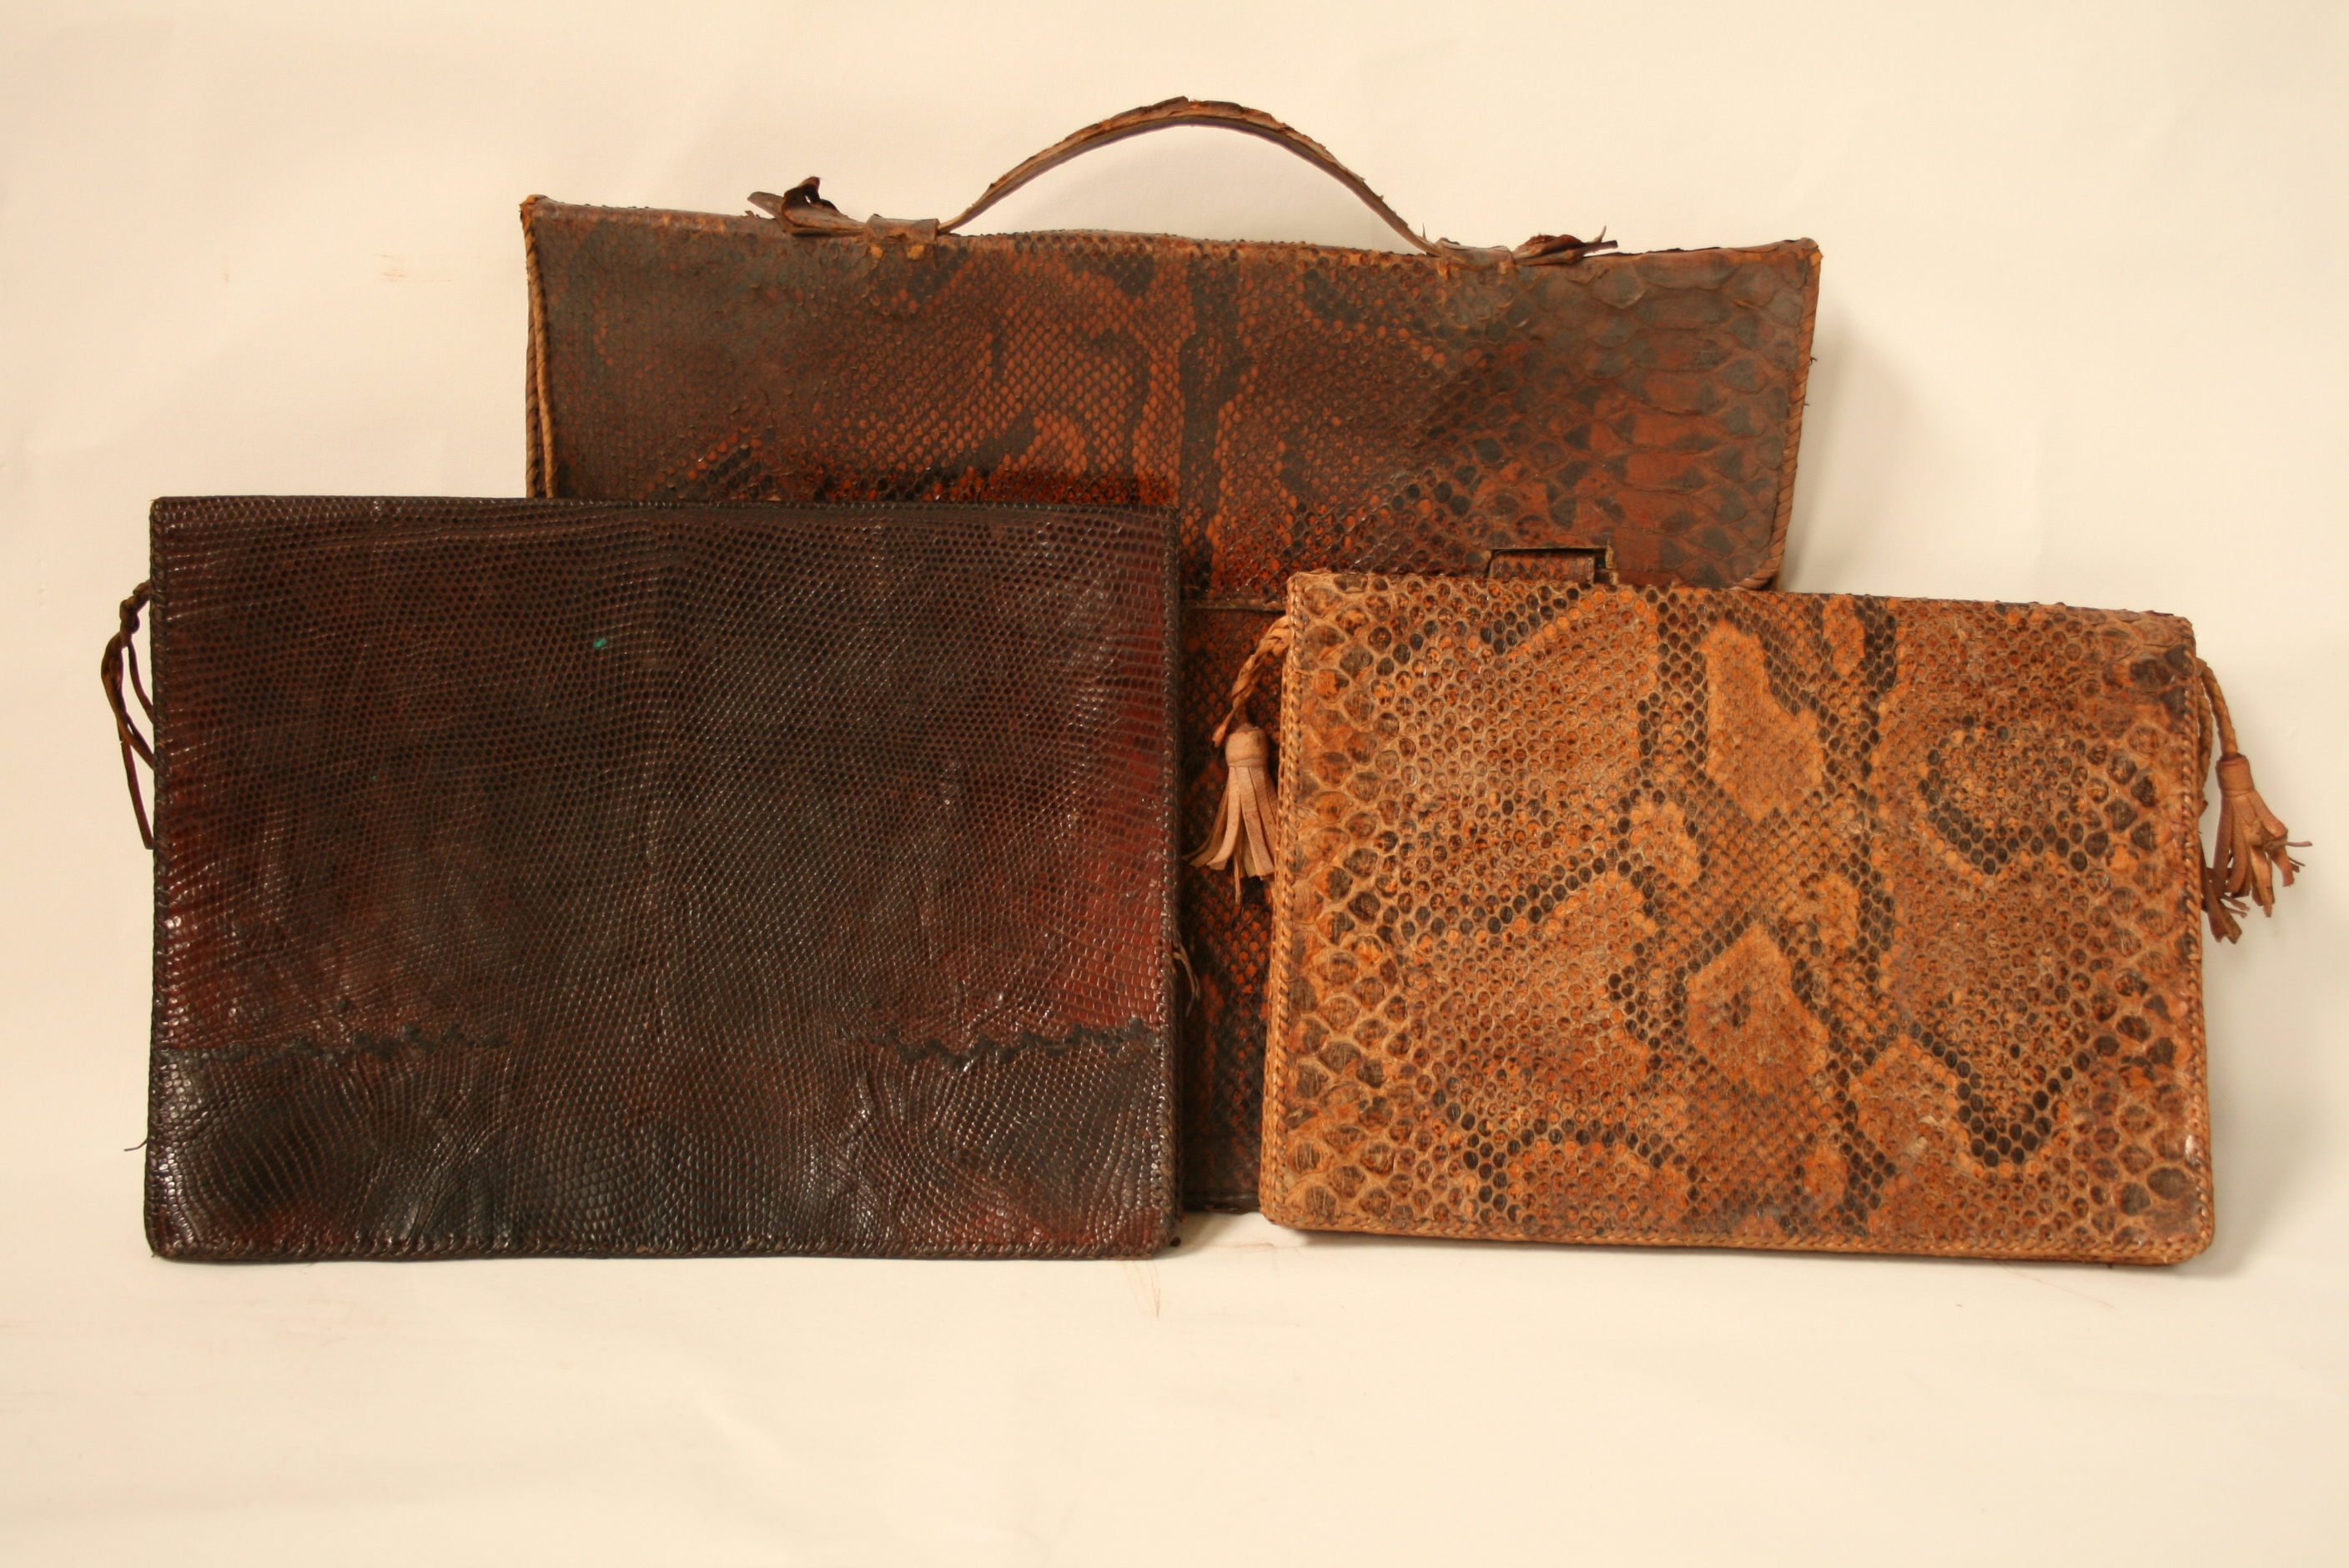 Lot 56 - Handbag with 2 central pockets plus one closed with a snake skin zip (boa) + one [...]